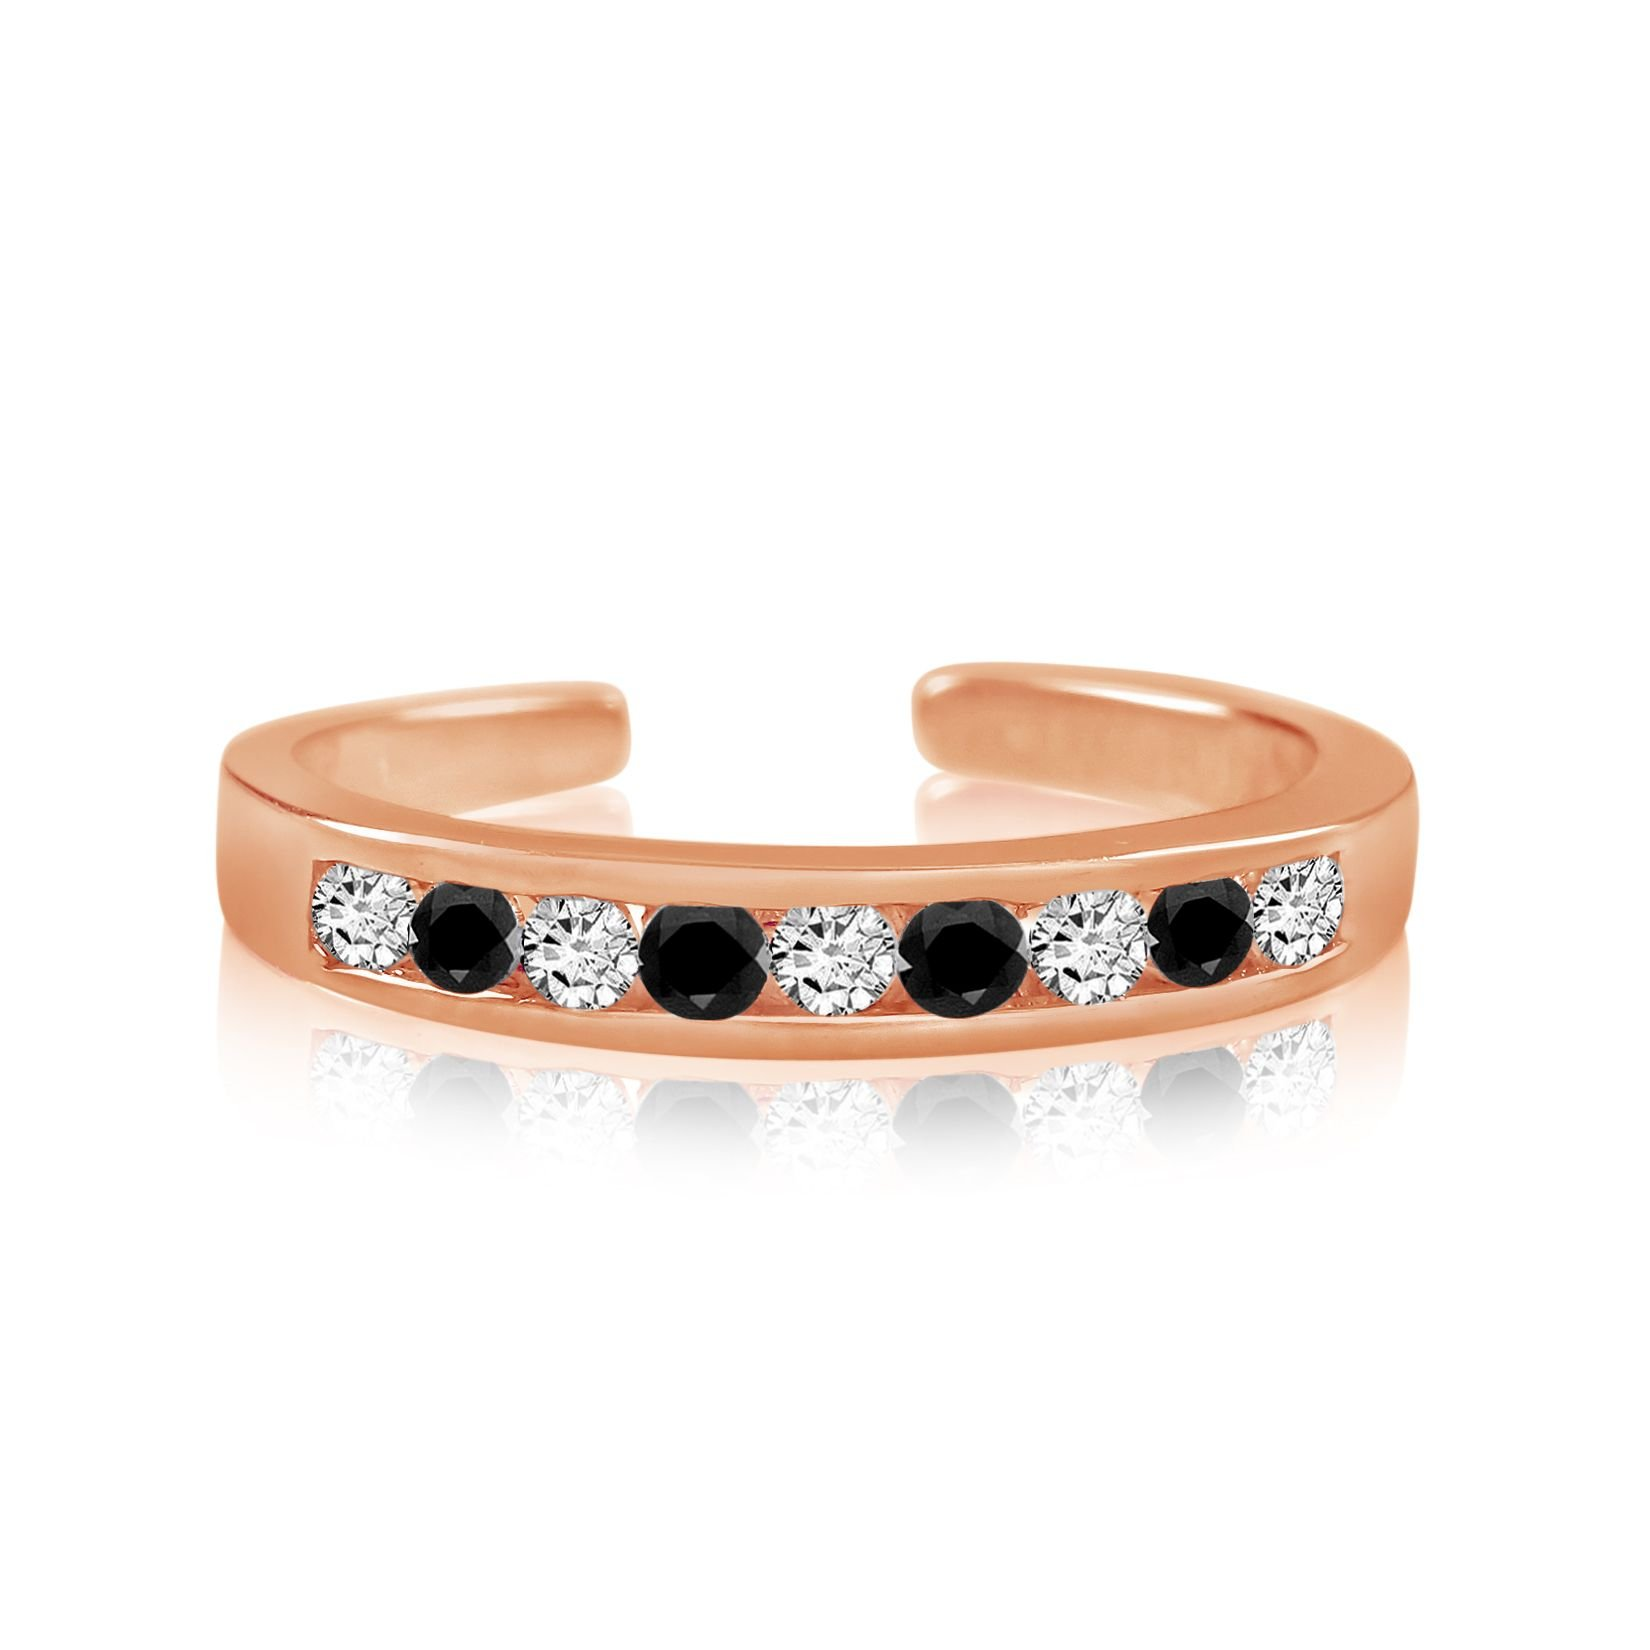 Sterling Silver Toe Rings Round Cut Cubic Zirconia White and Black Channel Set Rose Gold Plated